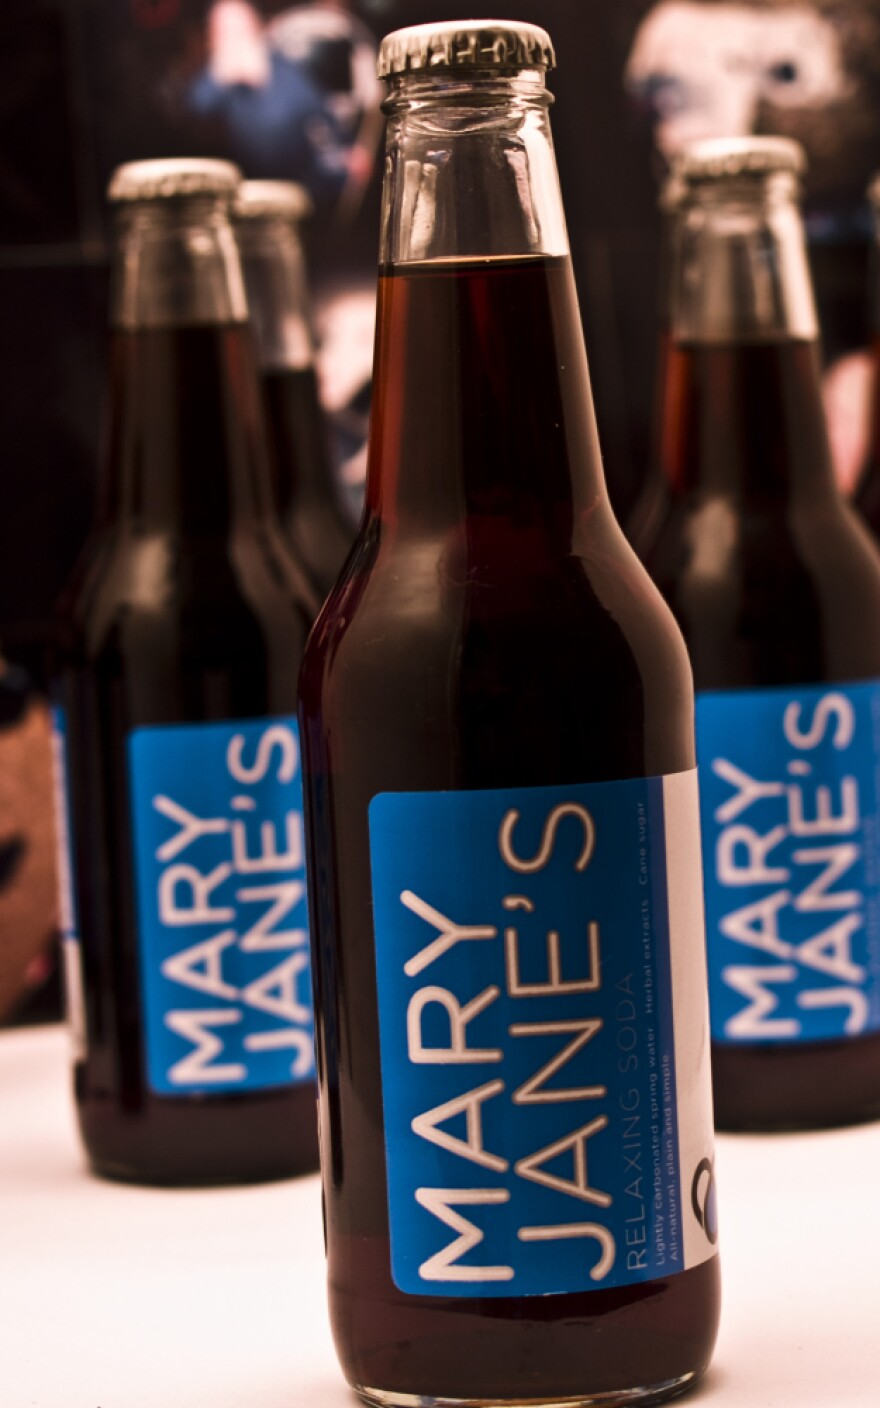 Mary Jane's soda is one of a handful of new herbal products aimed at chilling-out today's stressed-out consumer.